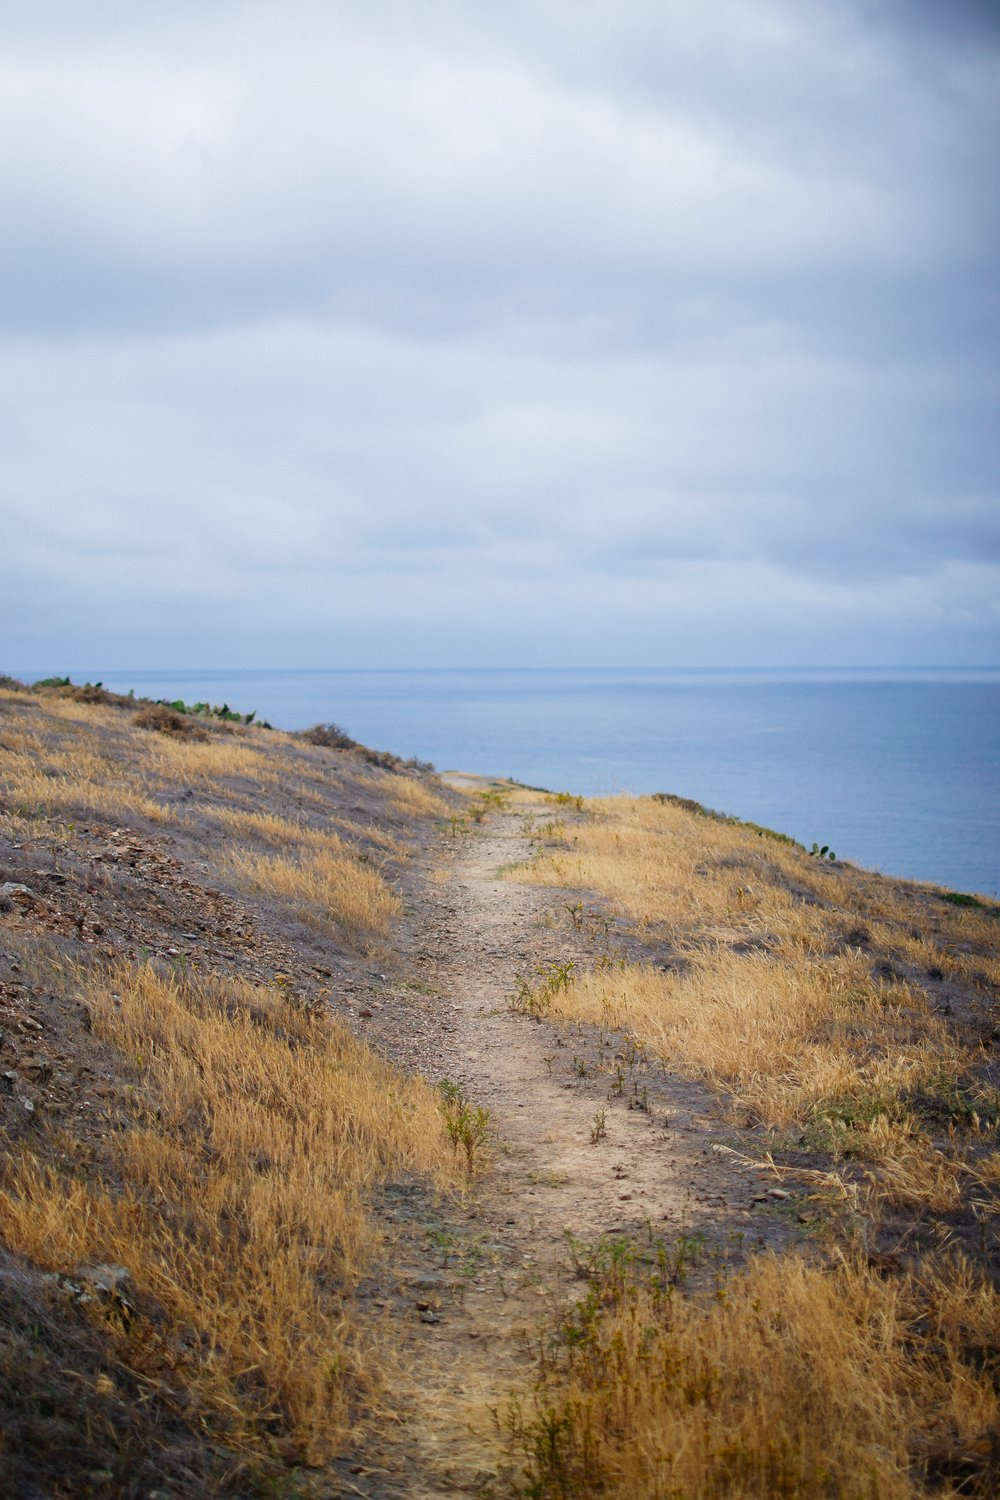 Matt-Sampson-Photography-catalina-island-California-golden-path.jpg